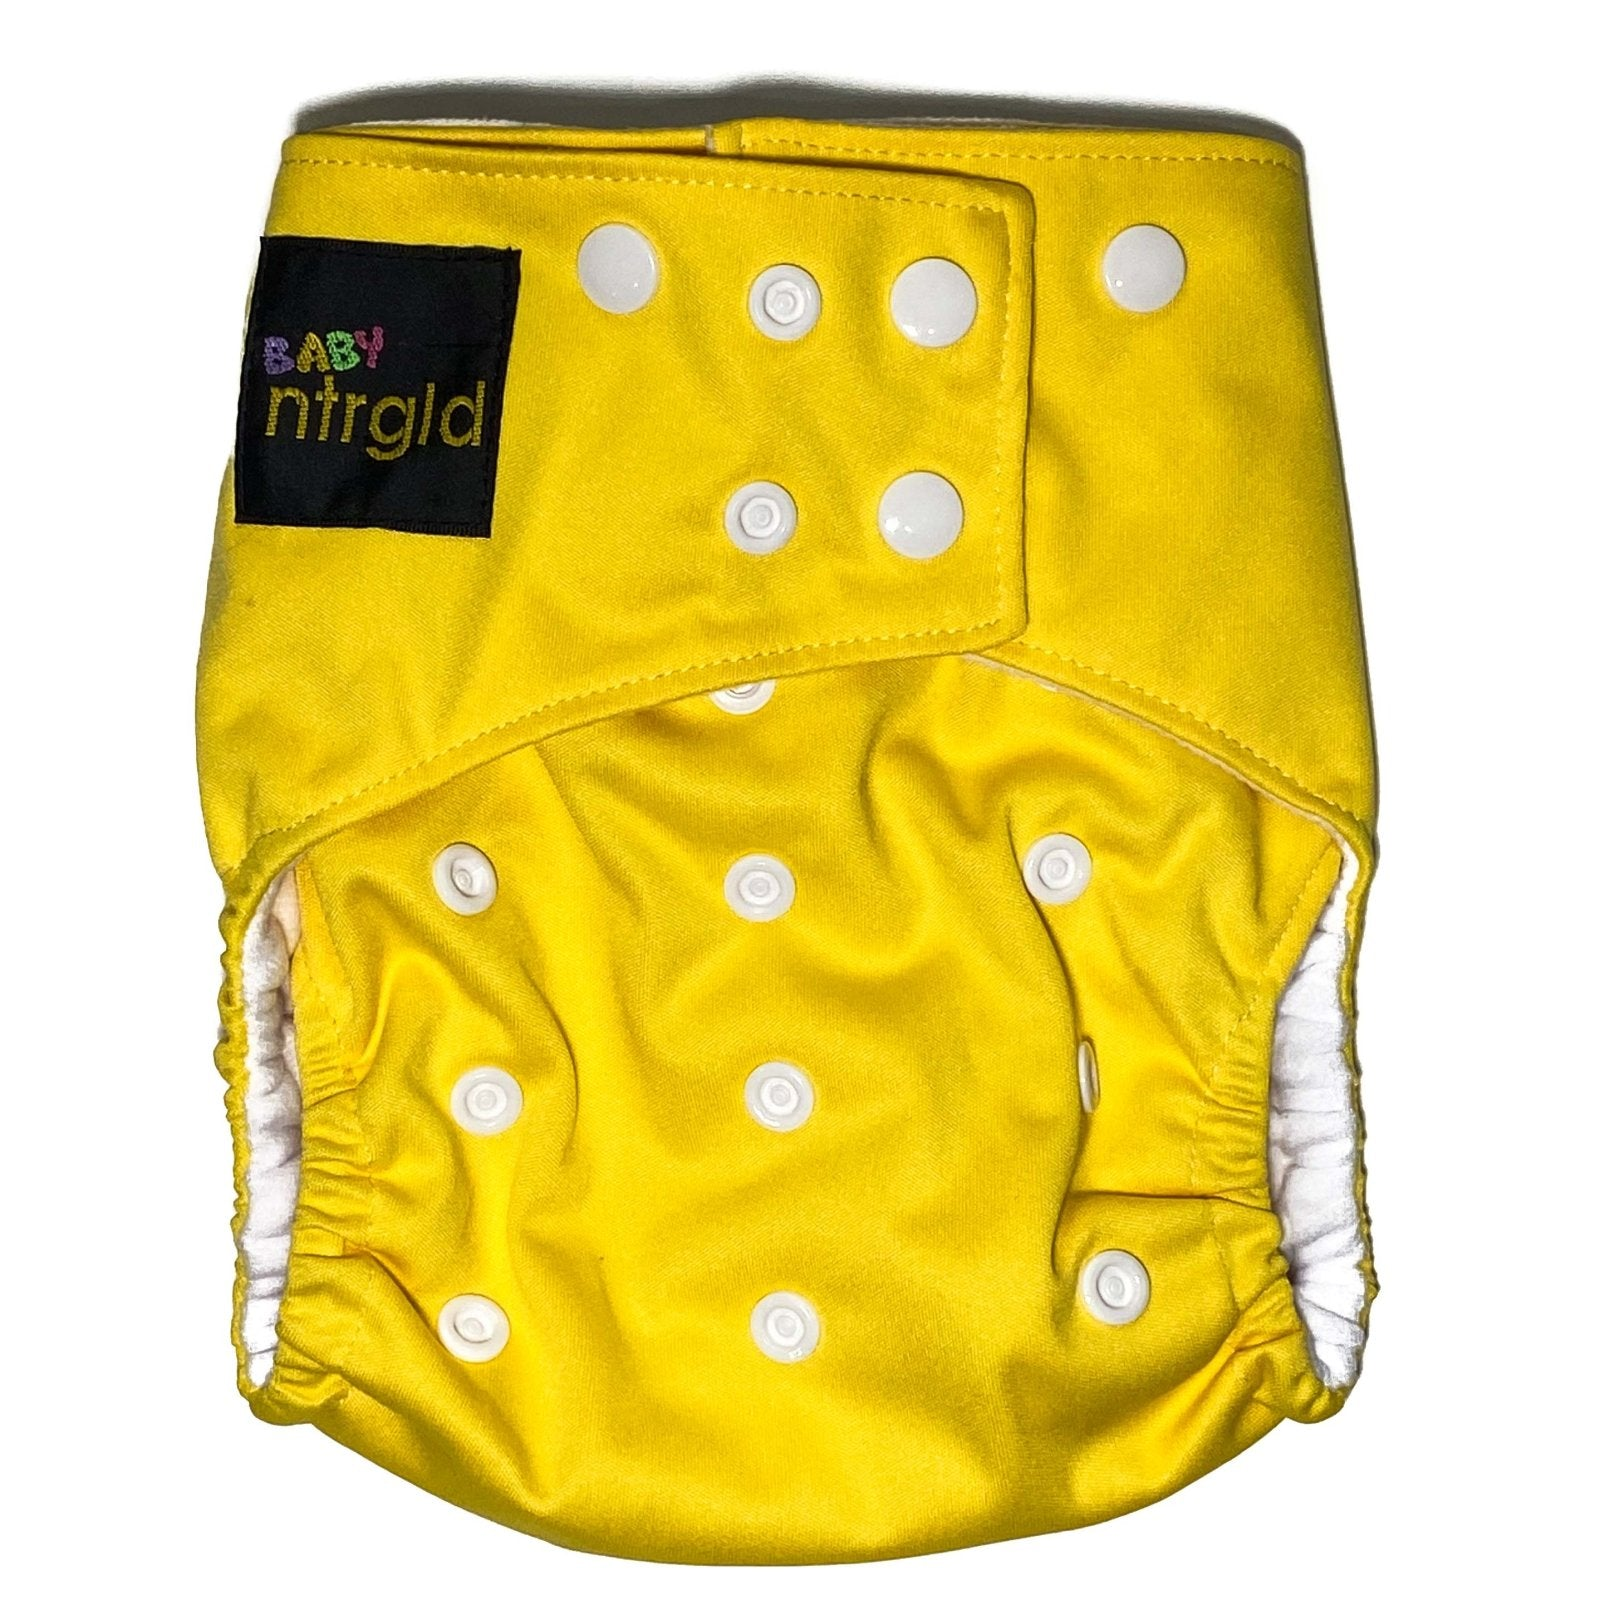 Cloth Baby Diaper w/ Removable Charcoal Bamboo Insert - Neter Gold YELLOW